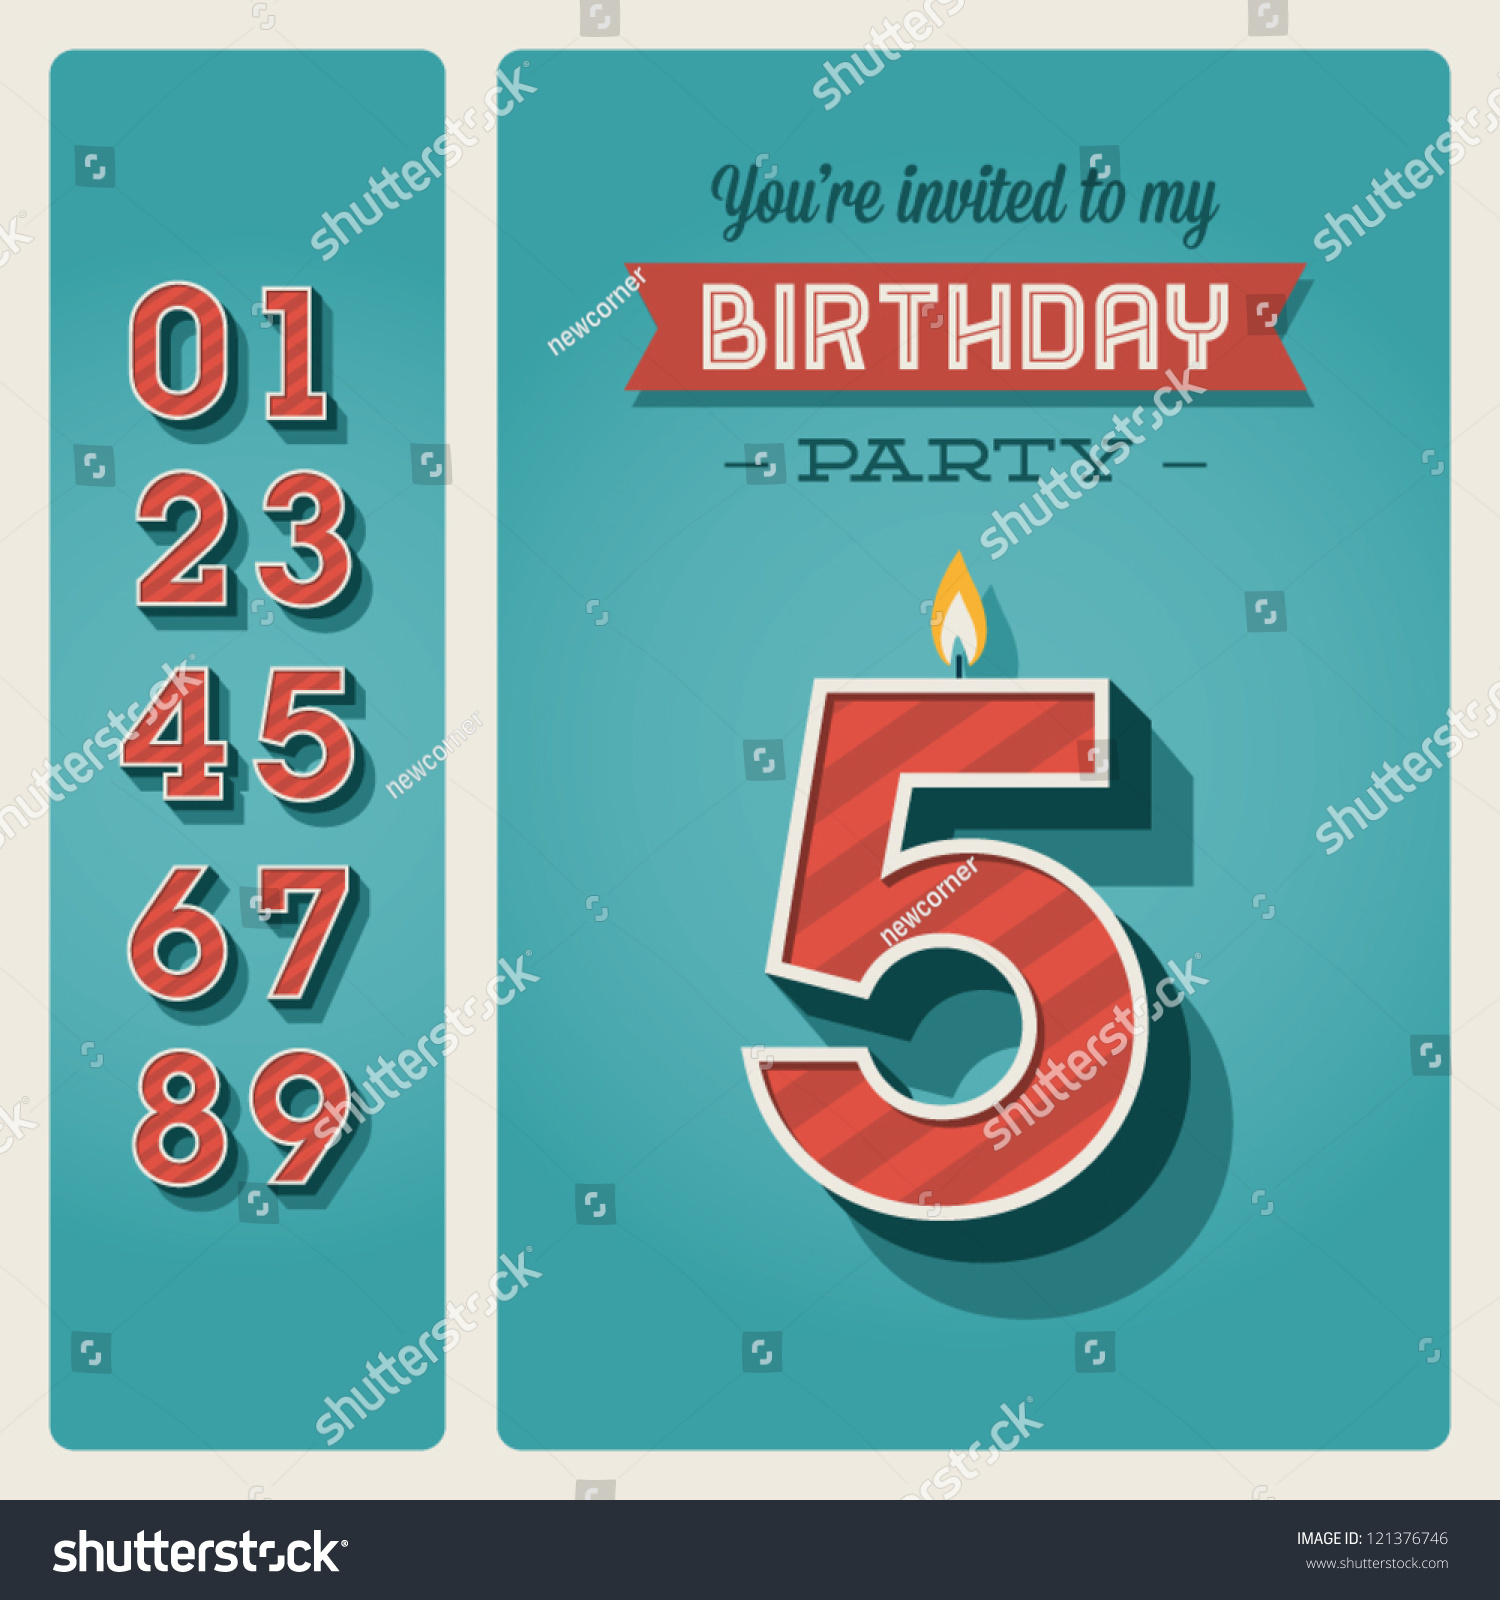 happy birthday card invitation candle number stock vector happy birthday card invitation candle number editable